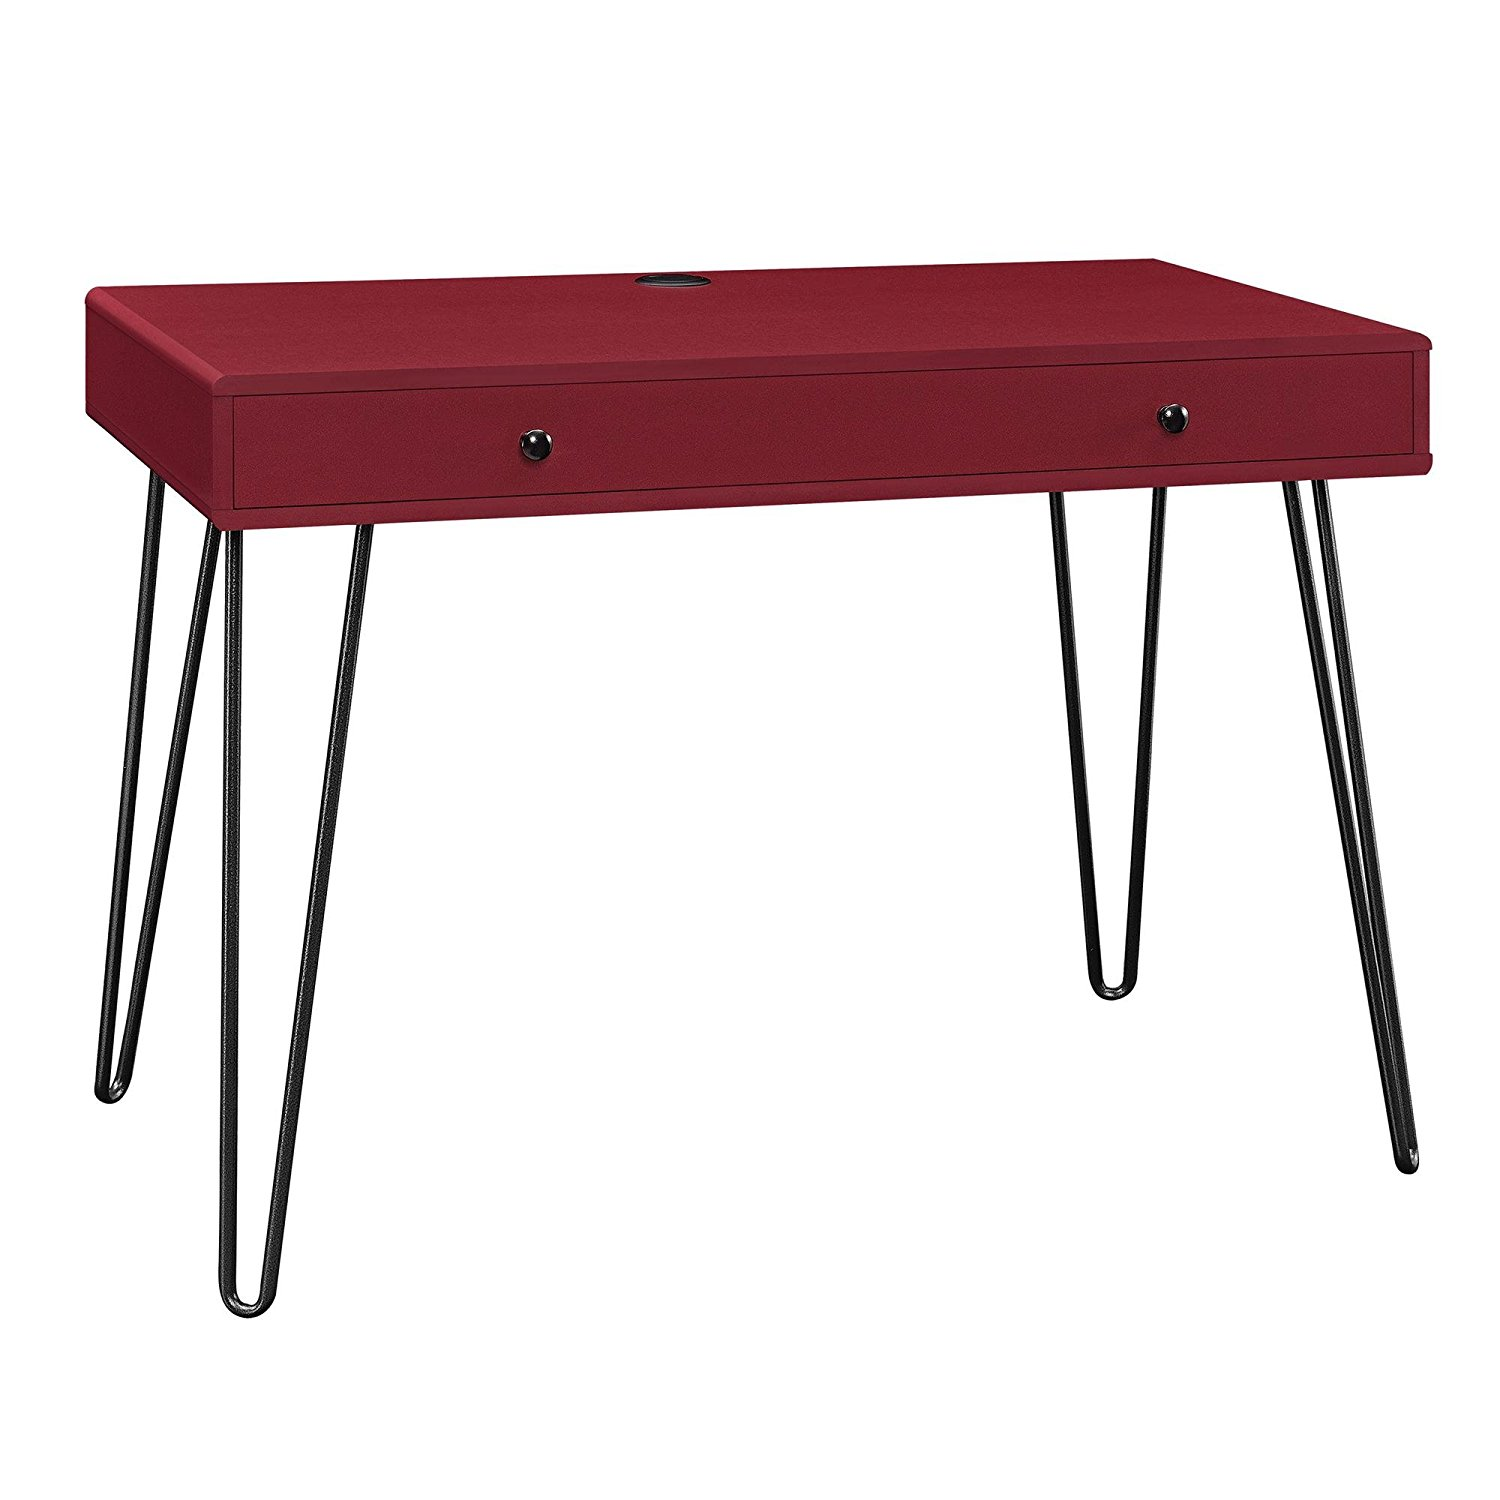 Altra Furniture Owen Retro Student Desk, Red